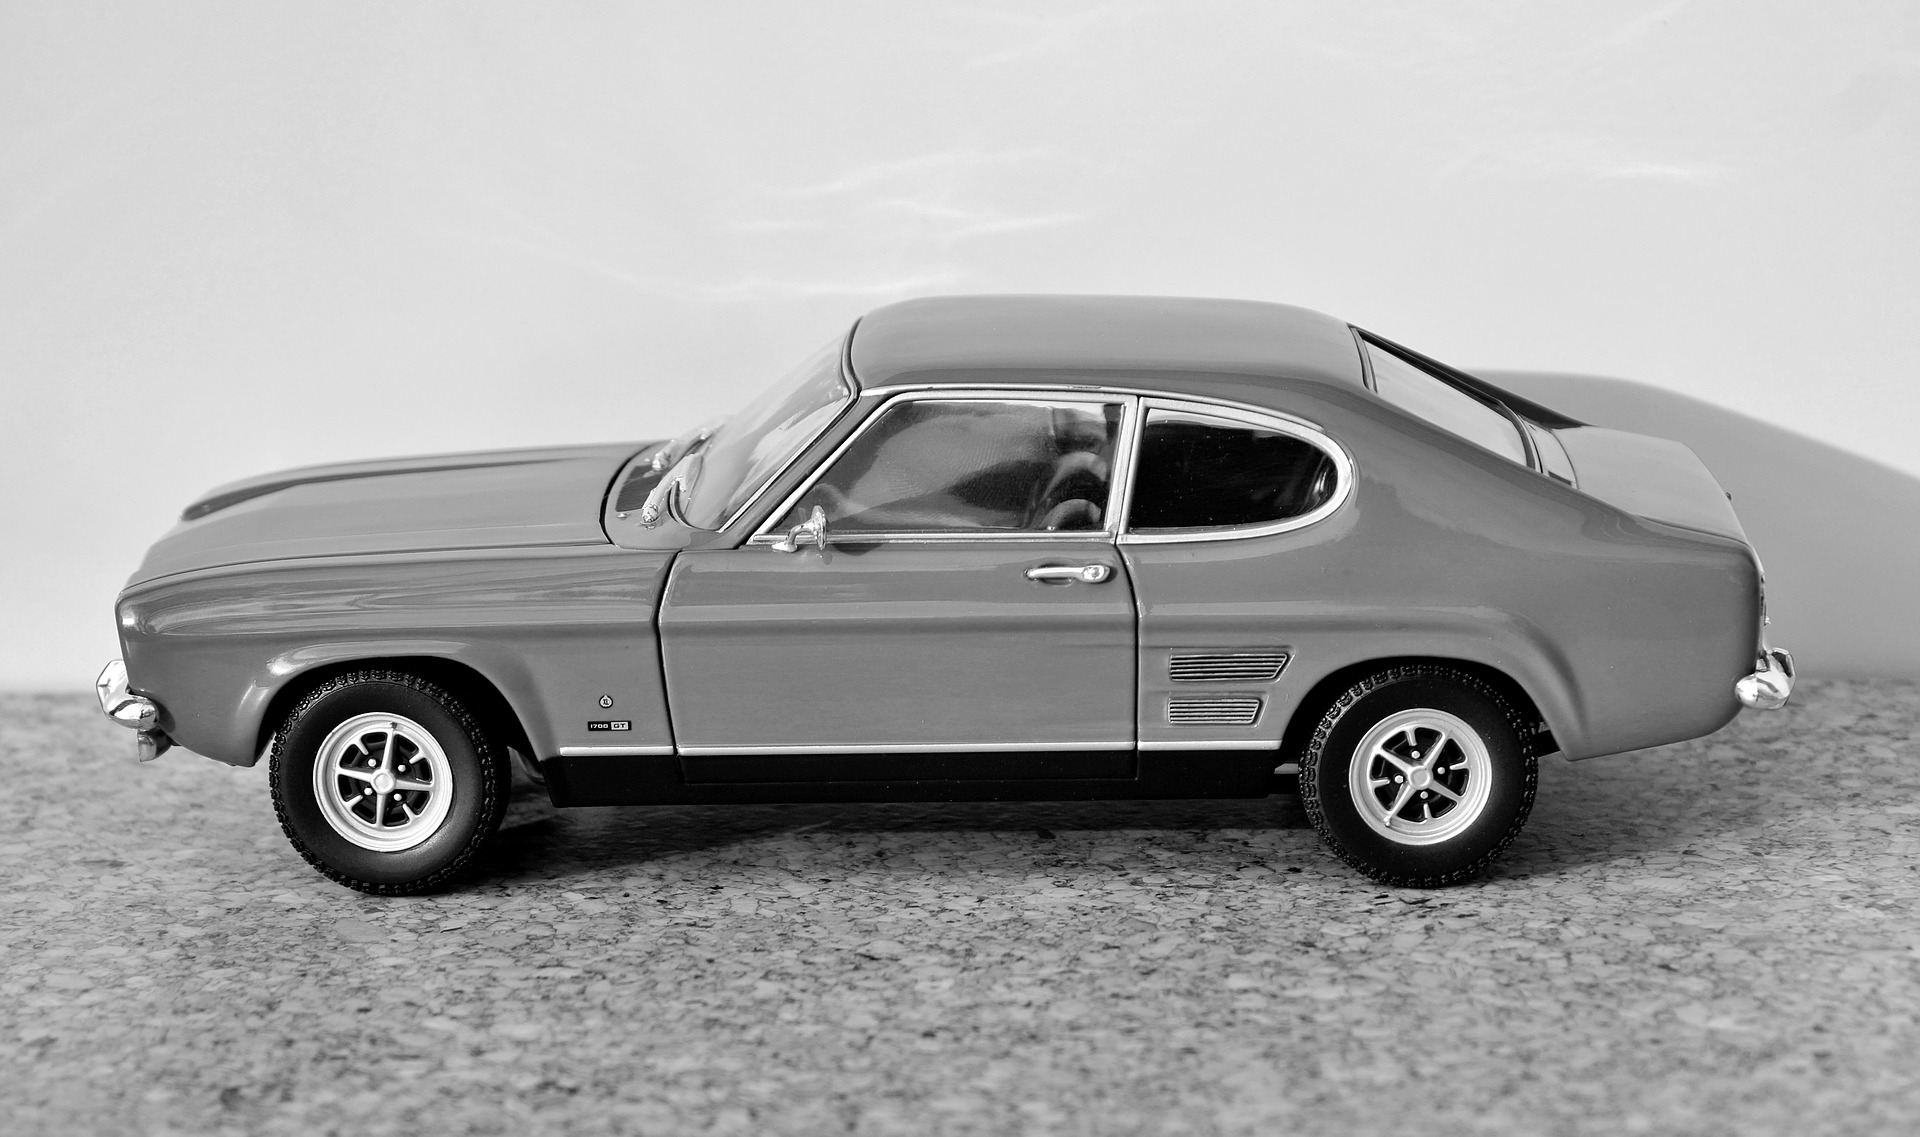 About Ford Cortina